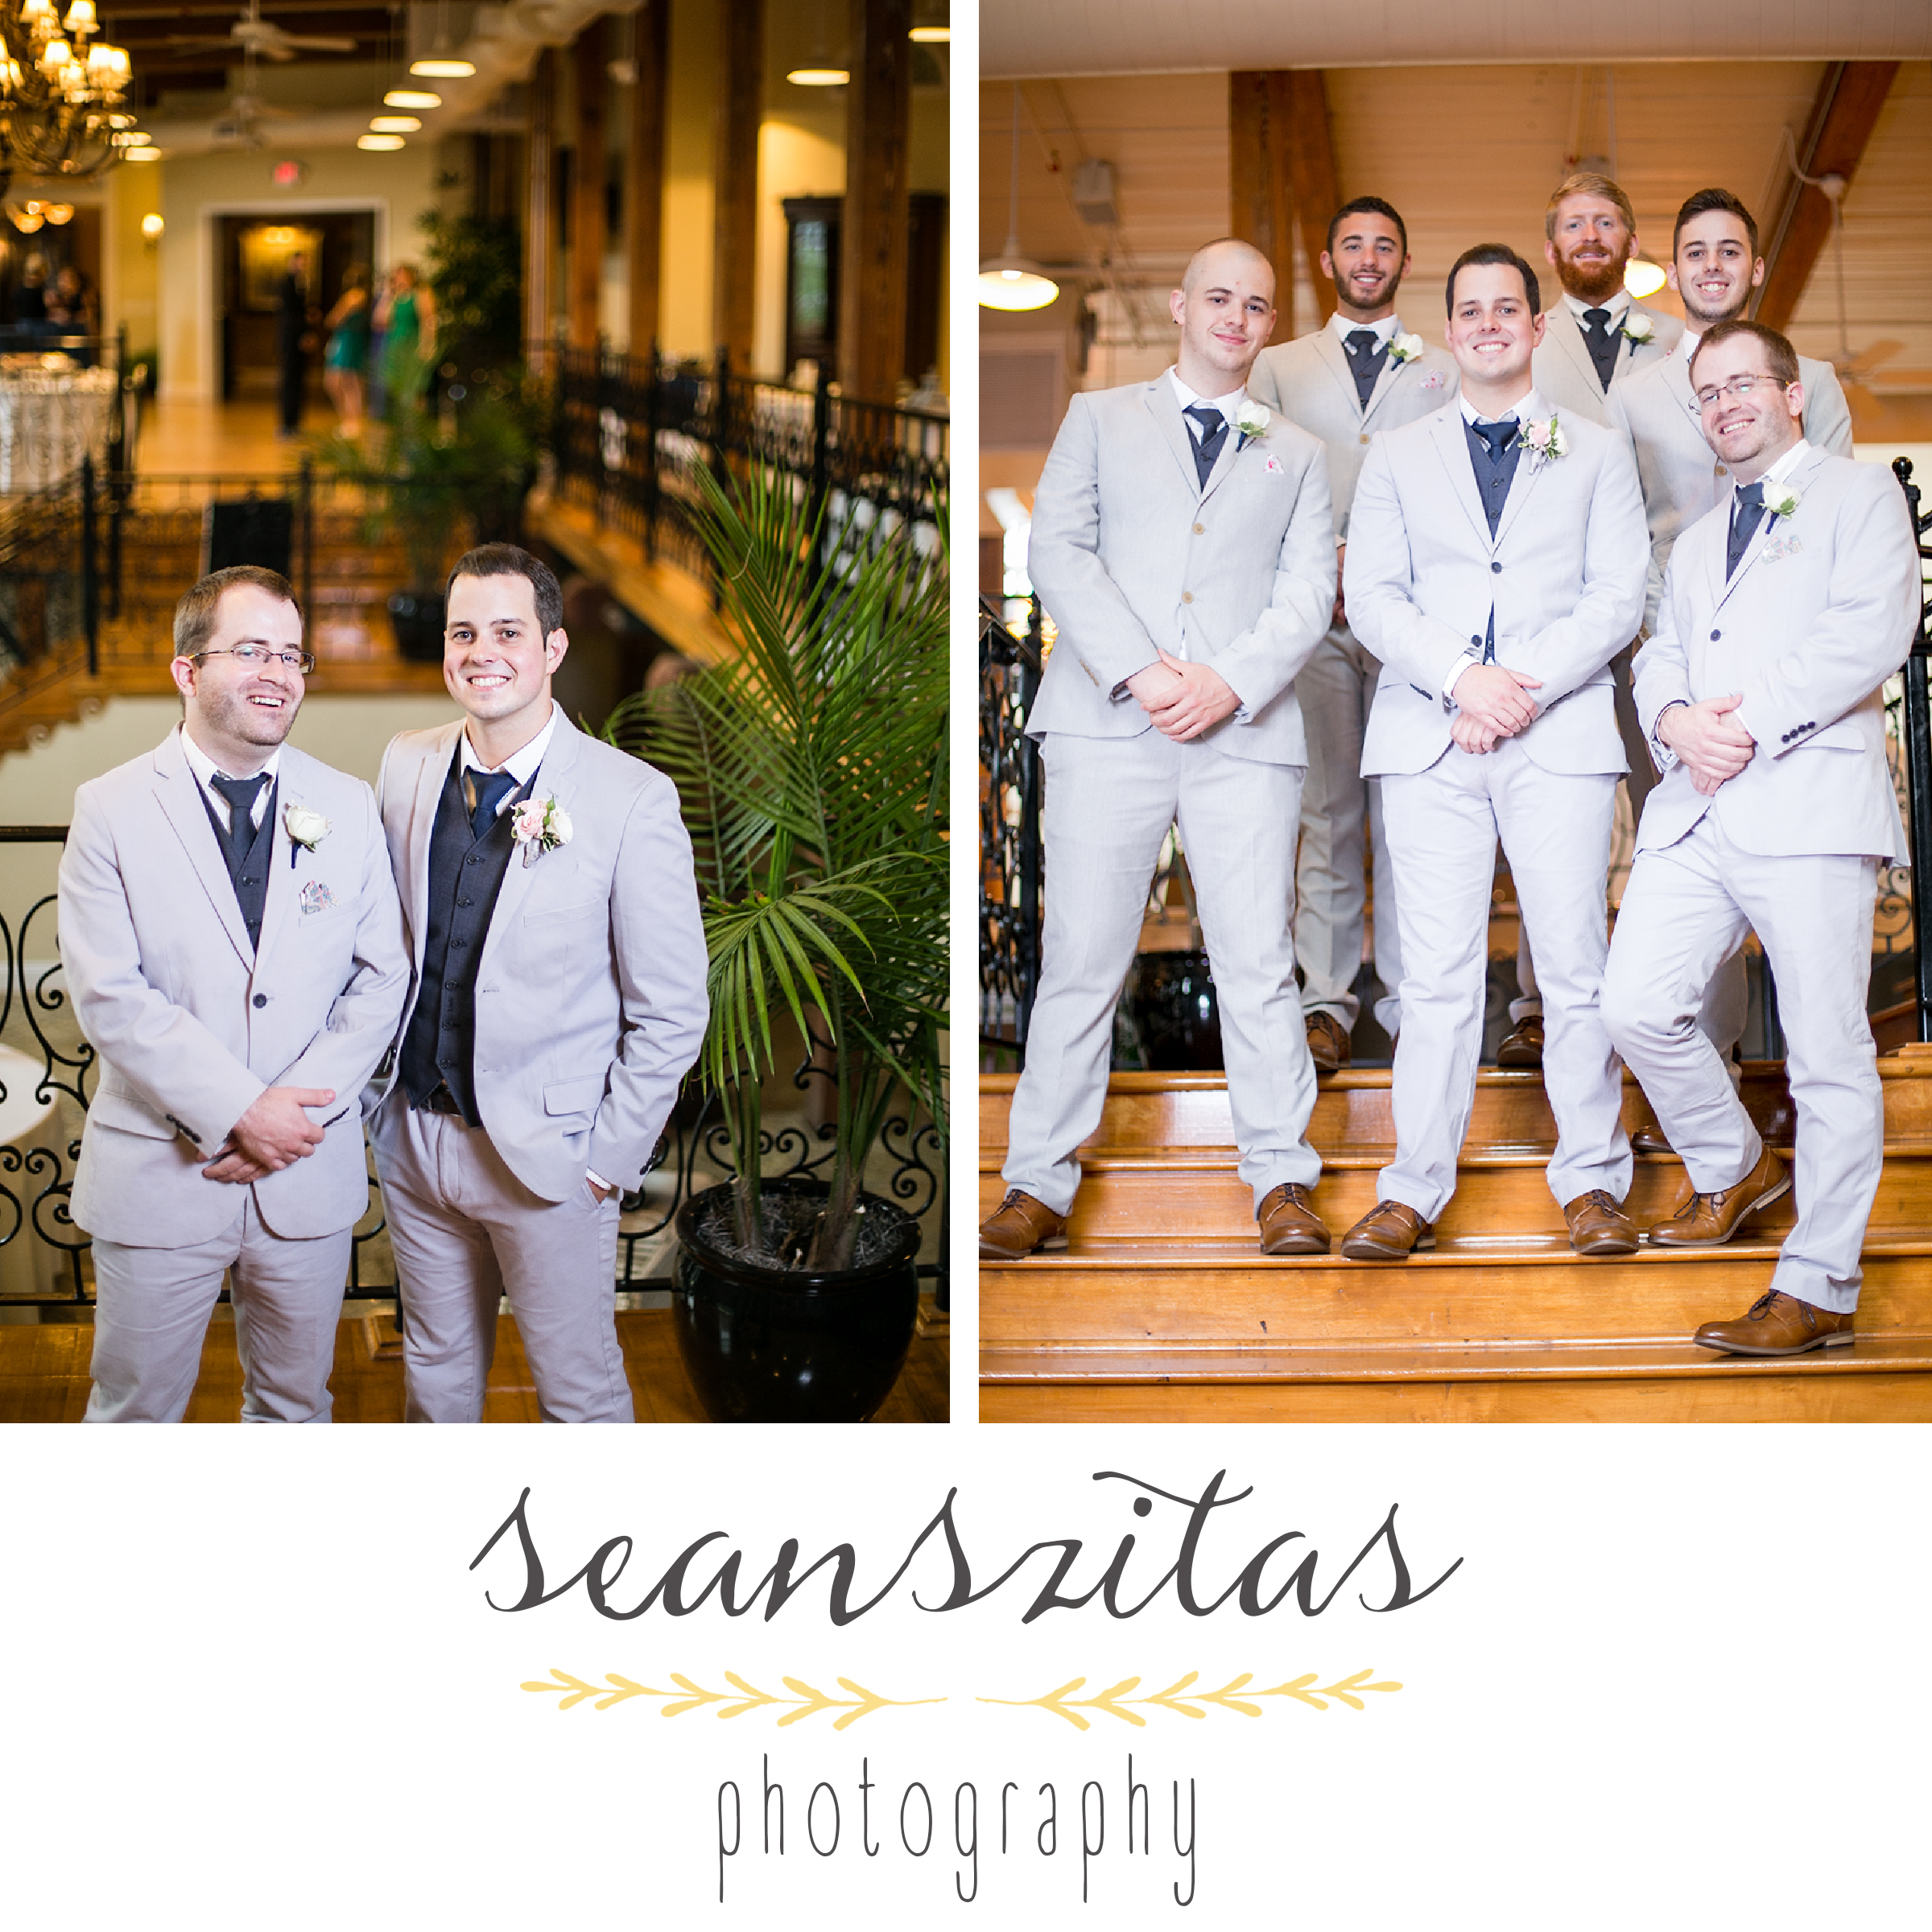 sean szitas photography wedding north carolina greensboro